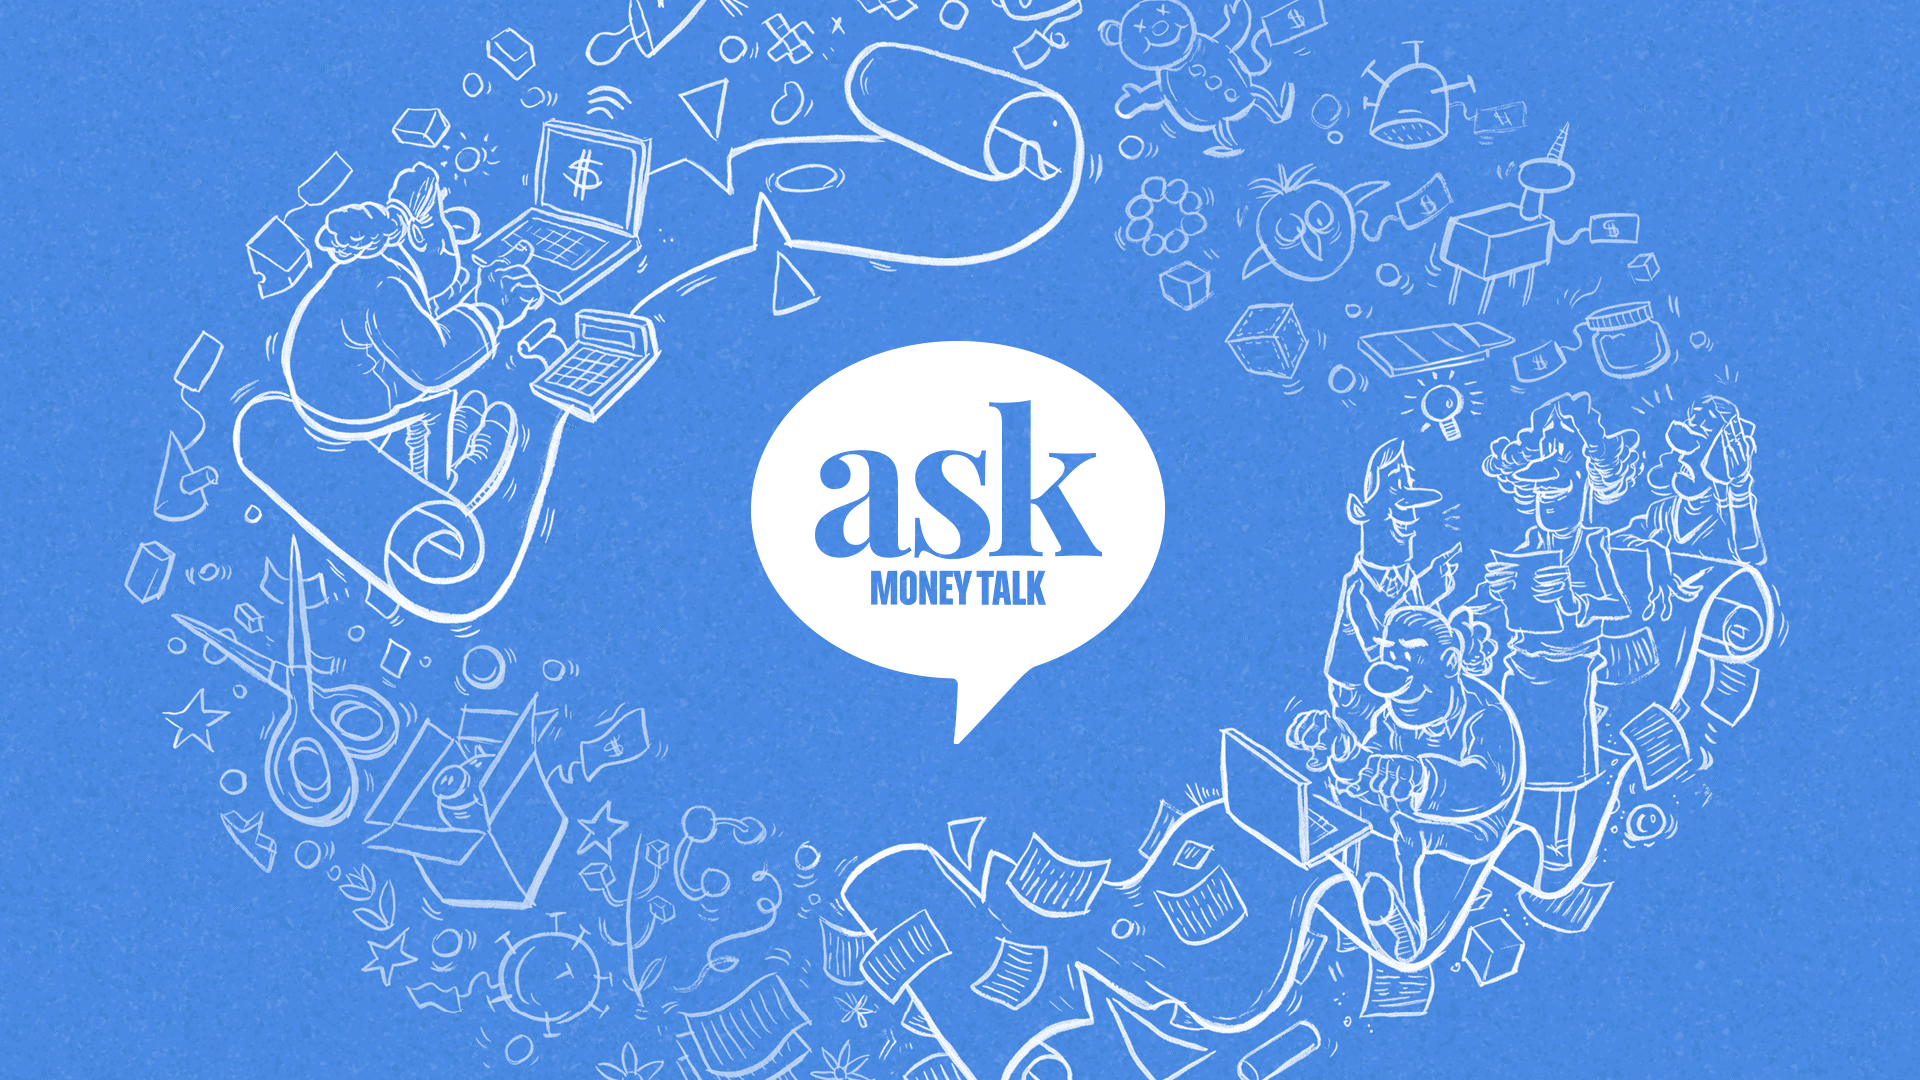 An image of the Ask MoneyTalk logo with images of people working in different small businesses